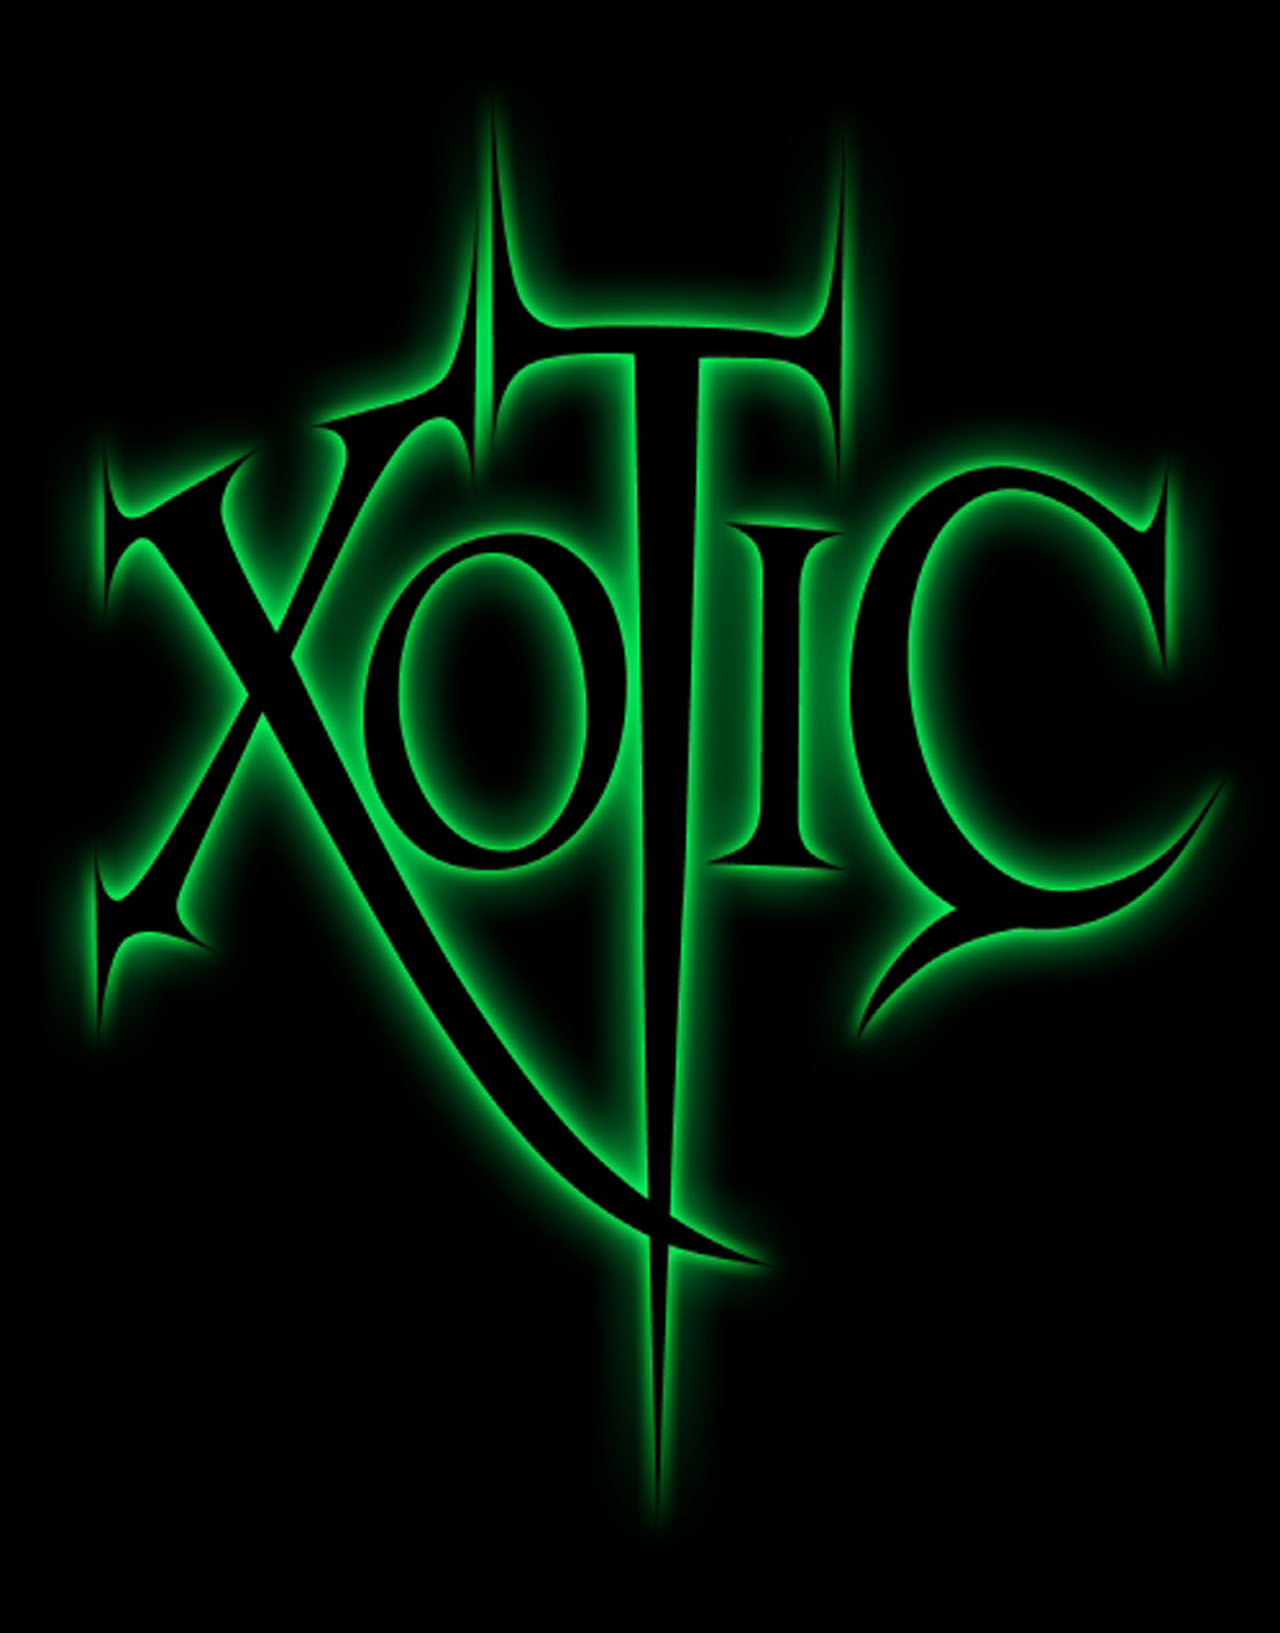 FPS Xotic announced